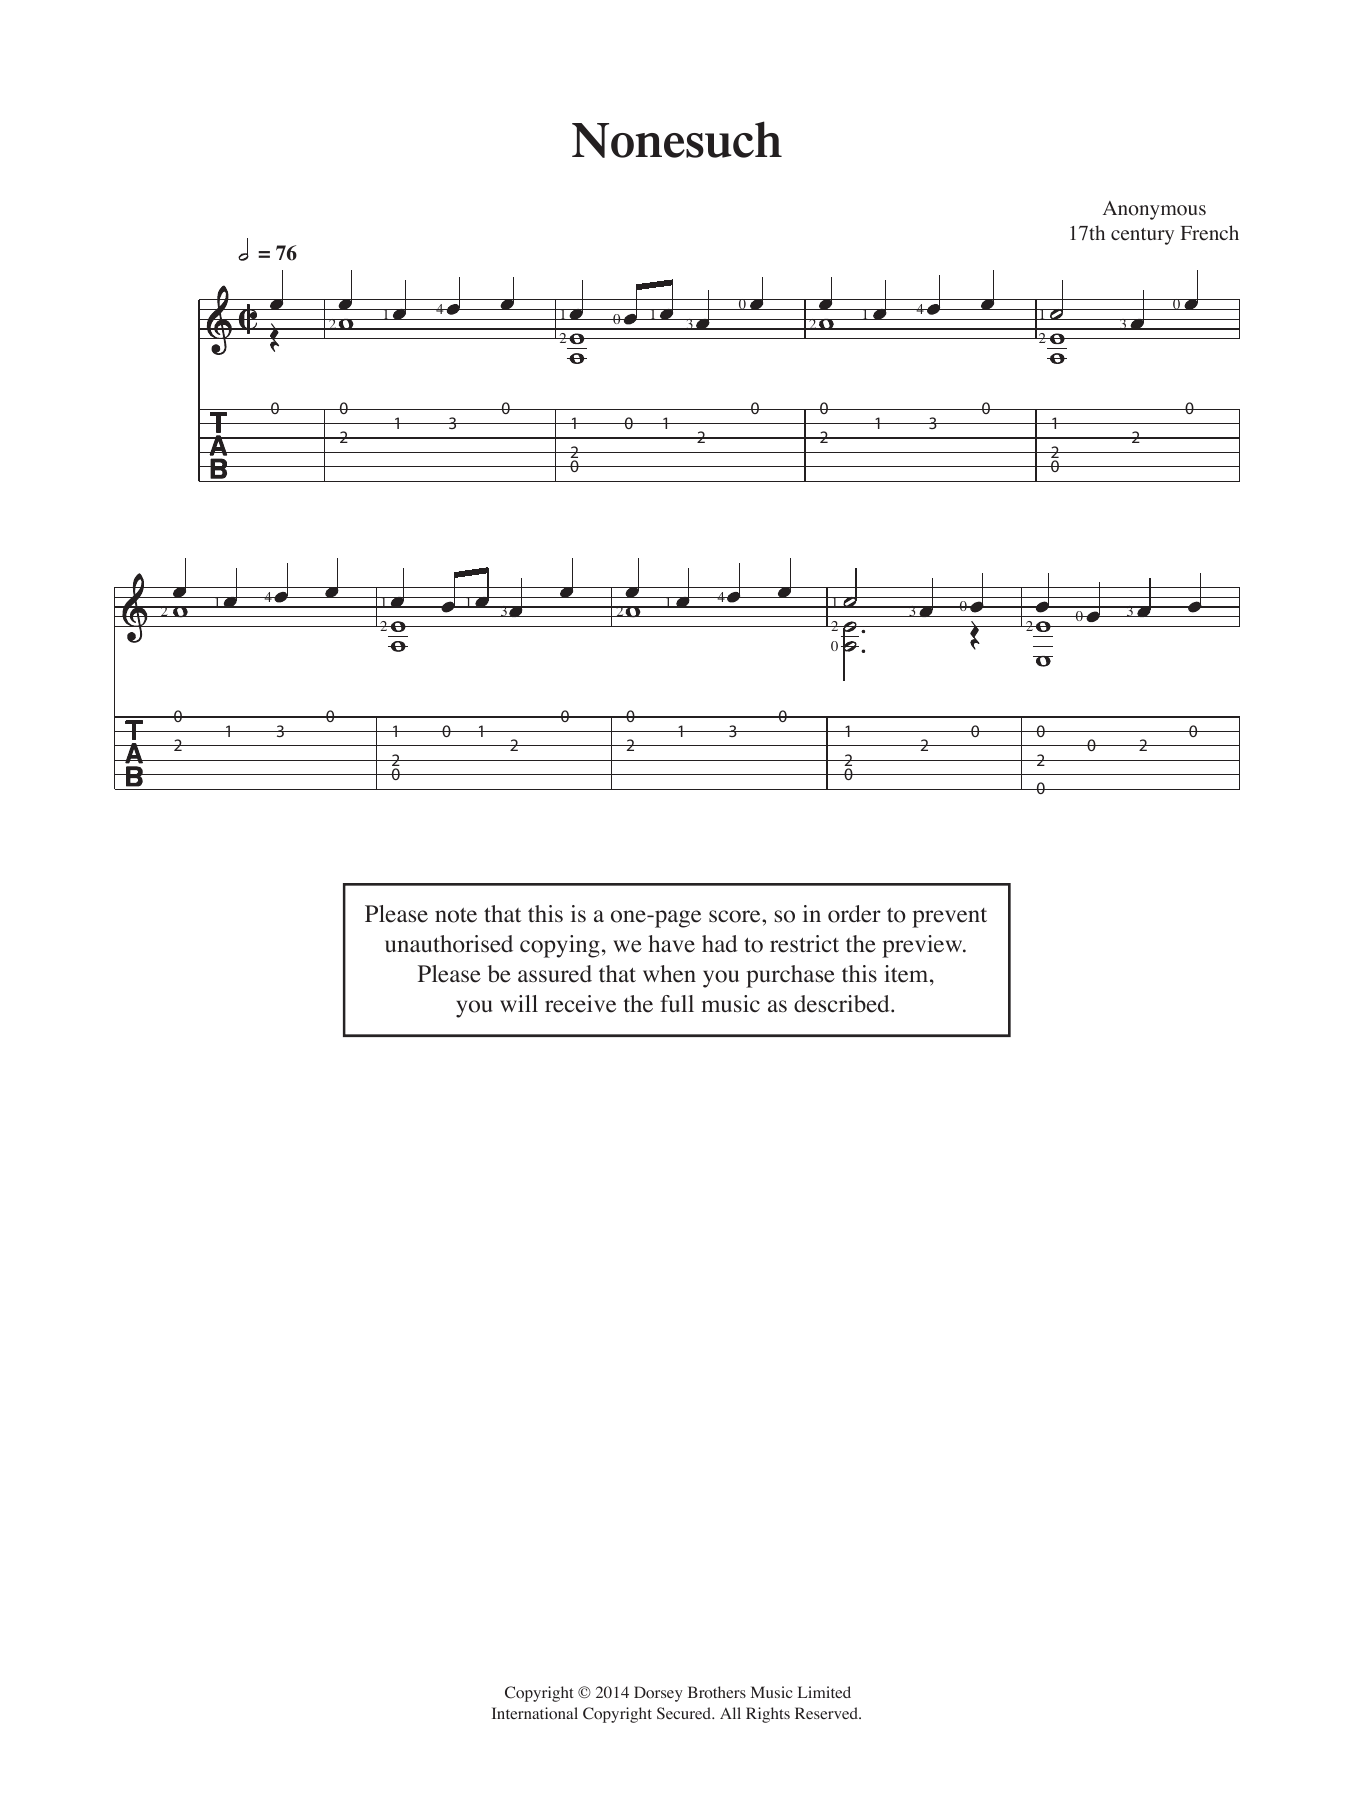 Anonymous Nonesuch sheet music preview music notes and score for Guitar including 2 page(s)